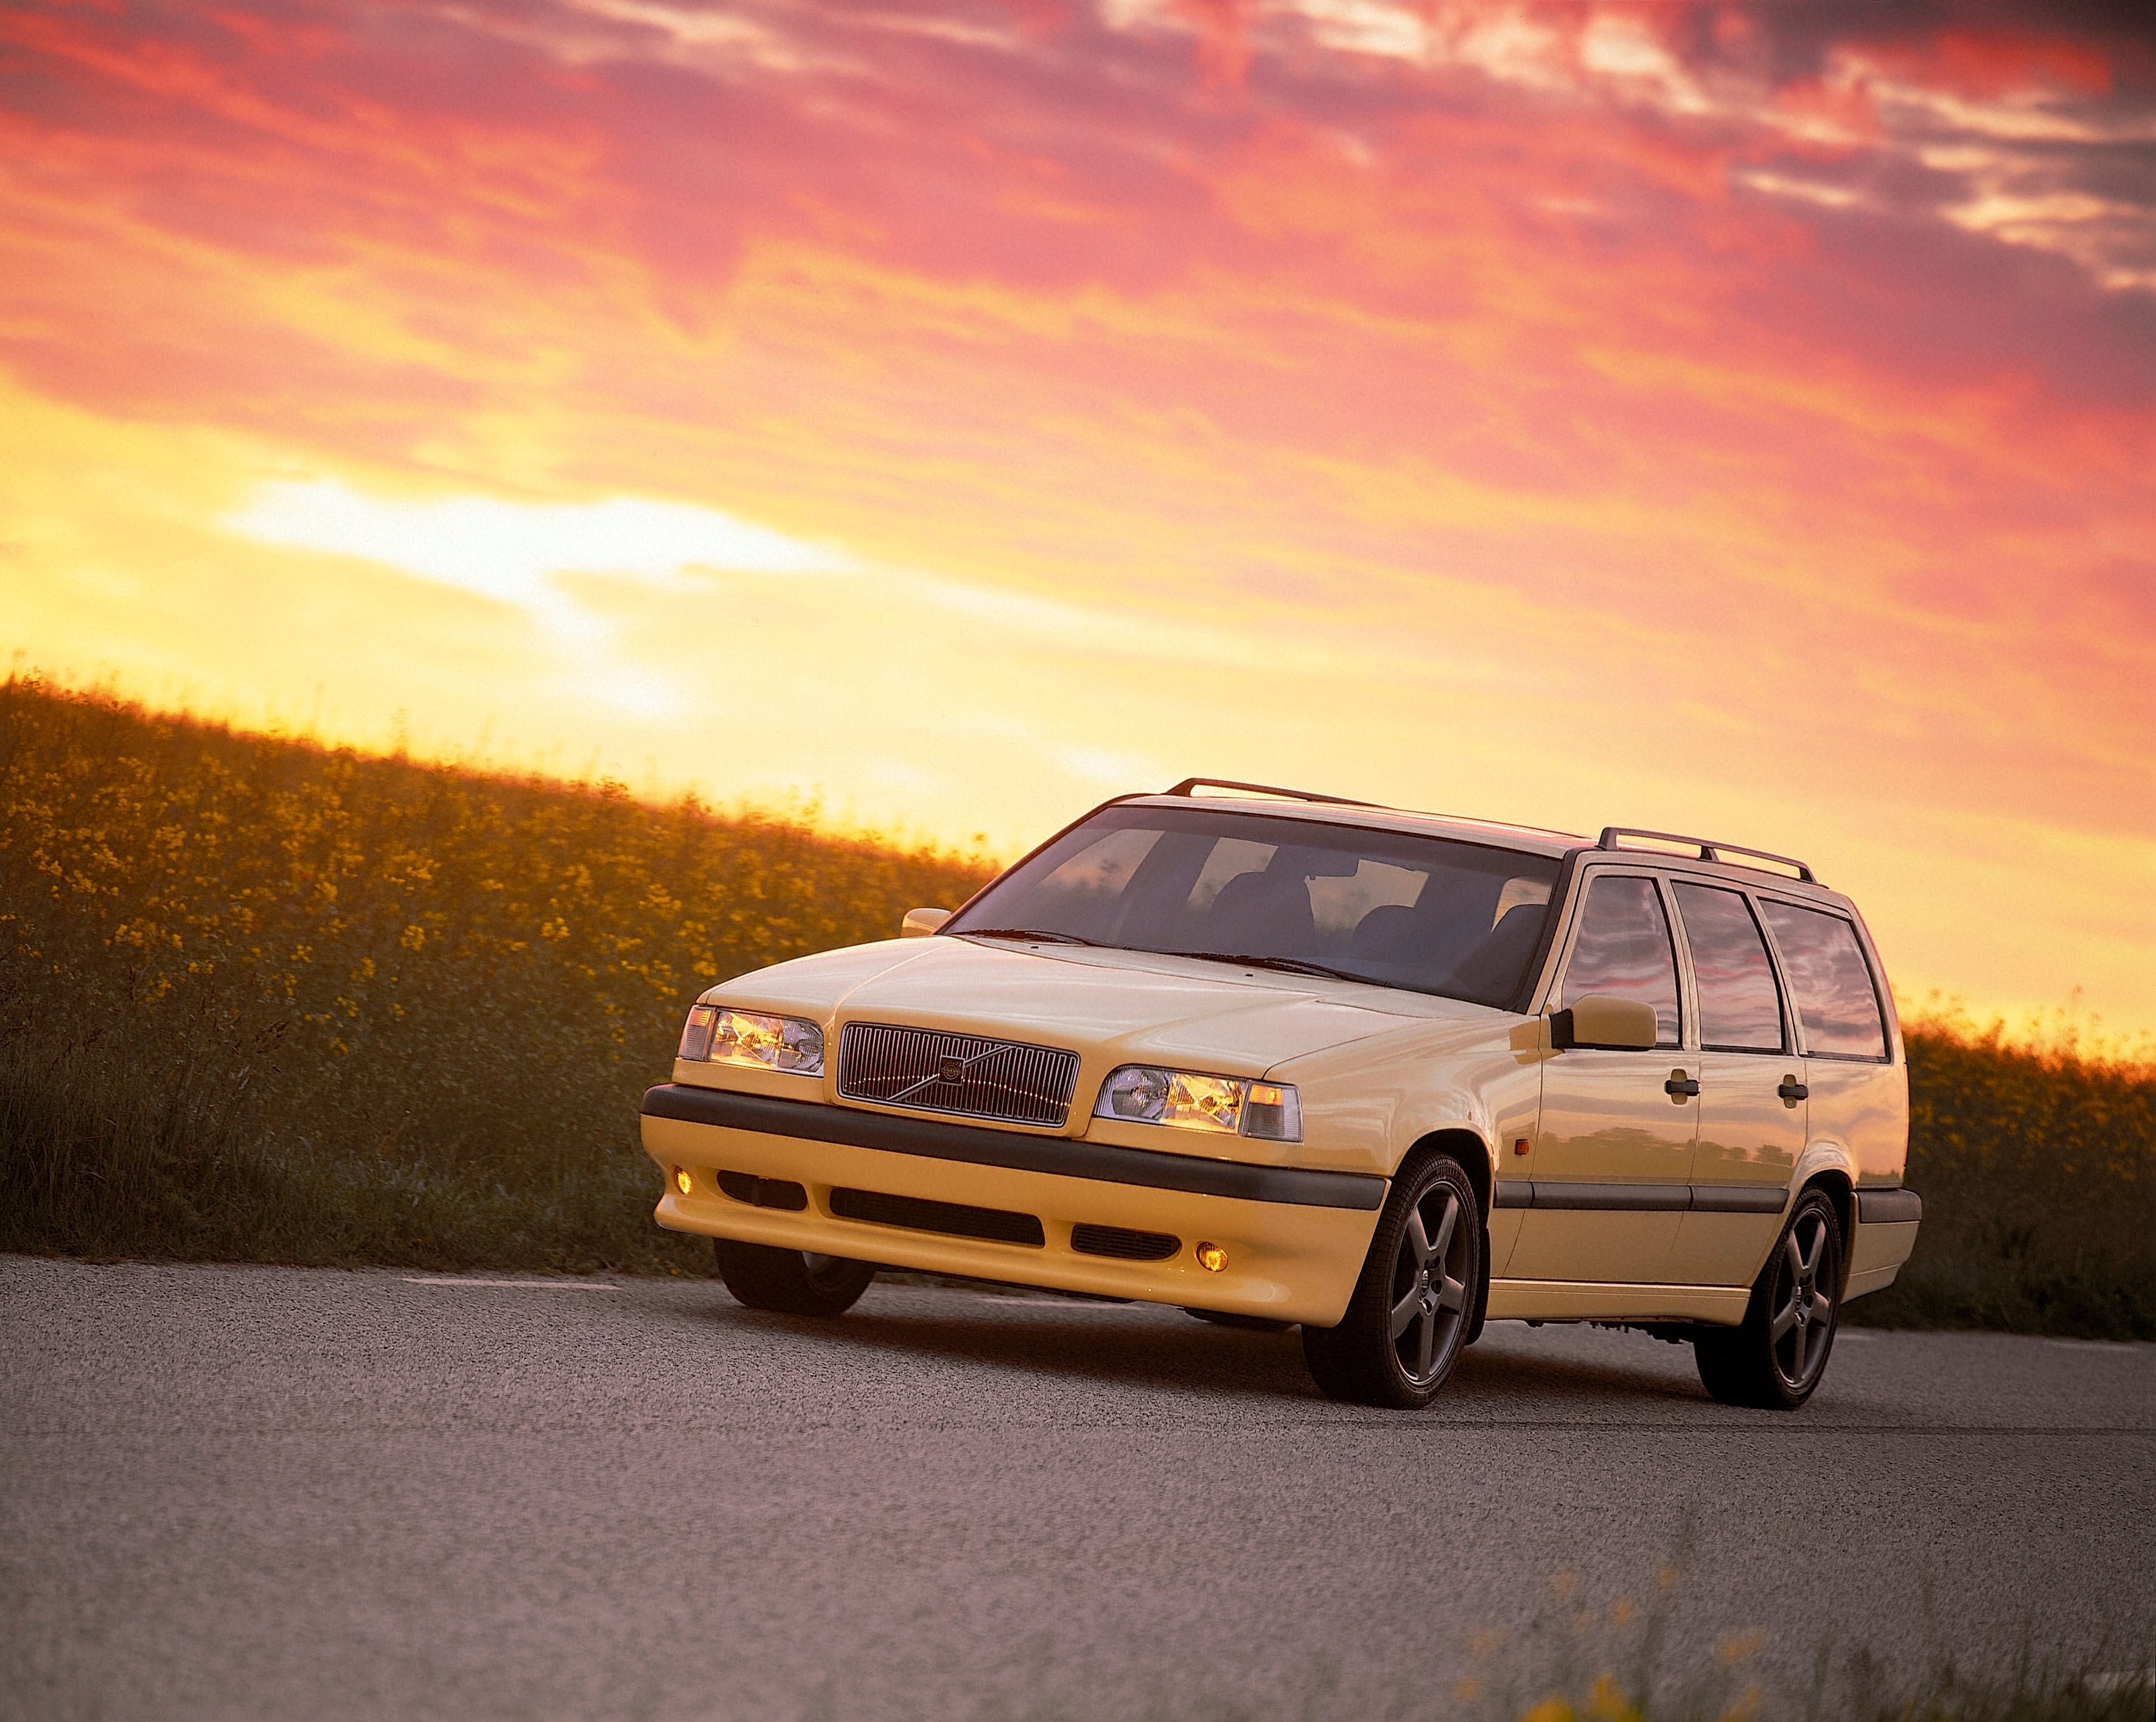 1995 Volvo 850 T 5r, Yellow -  850, 850 wagon, 1995, Exterior, Historical, Images, R